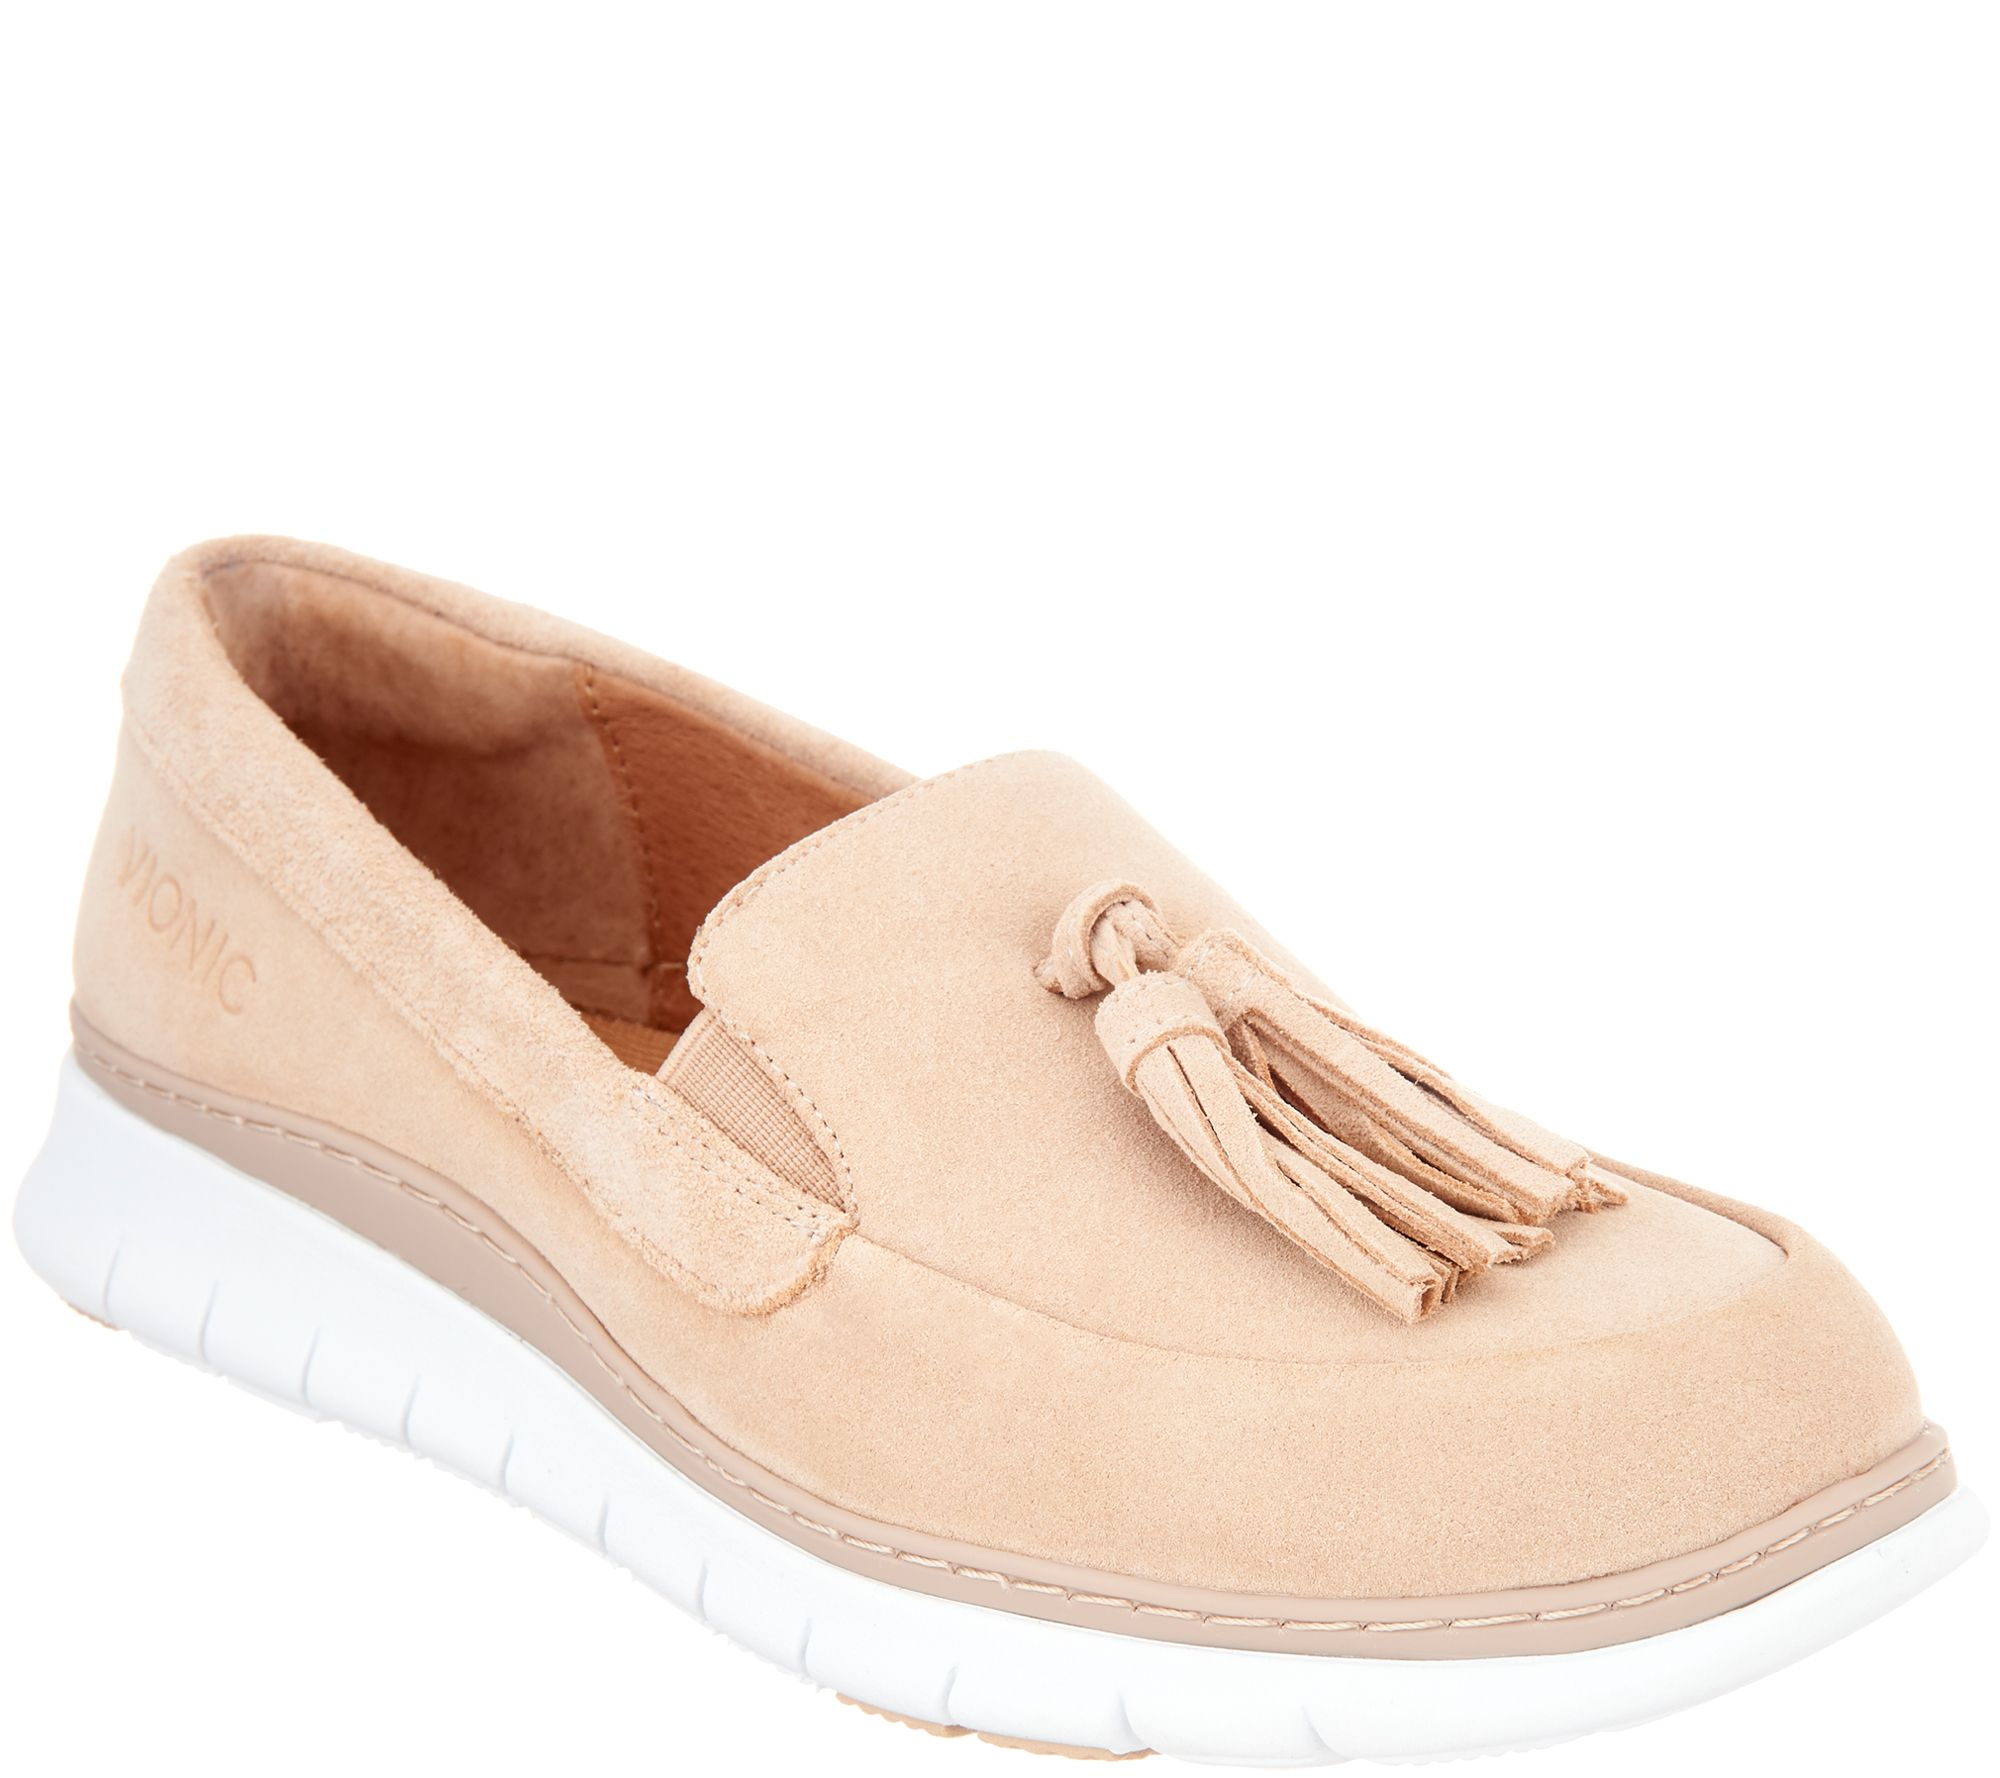 4150f034e26 Vionic Suede Slip-On Shoes with Tassels - Quinn - Page 1 — QVC.com